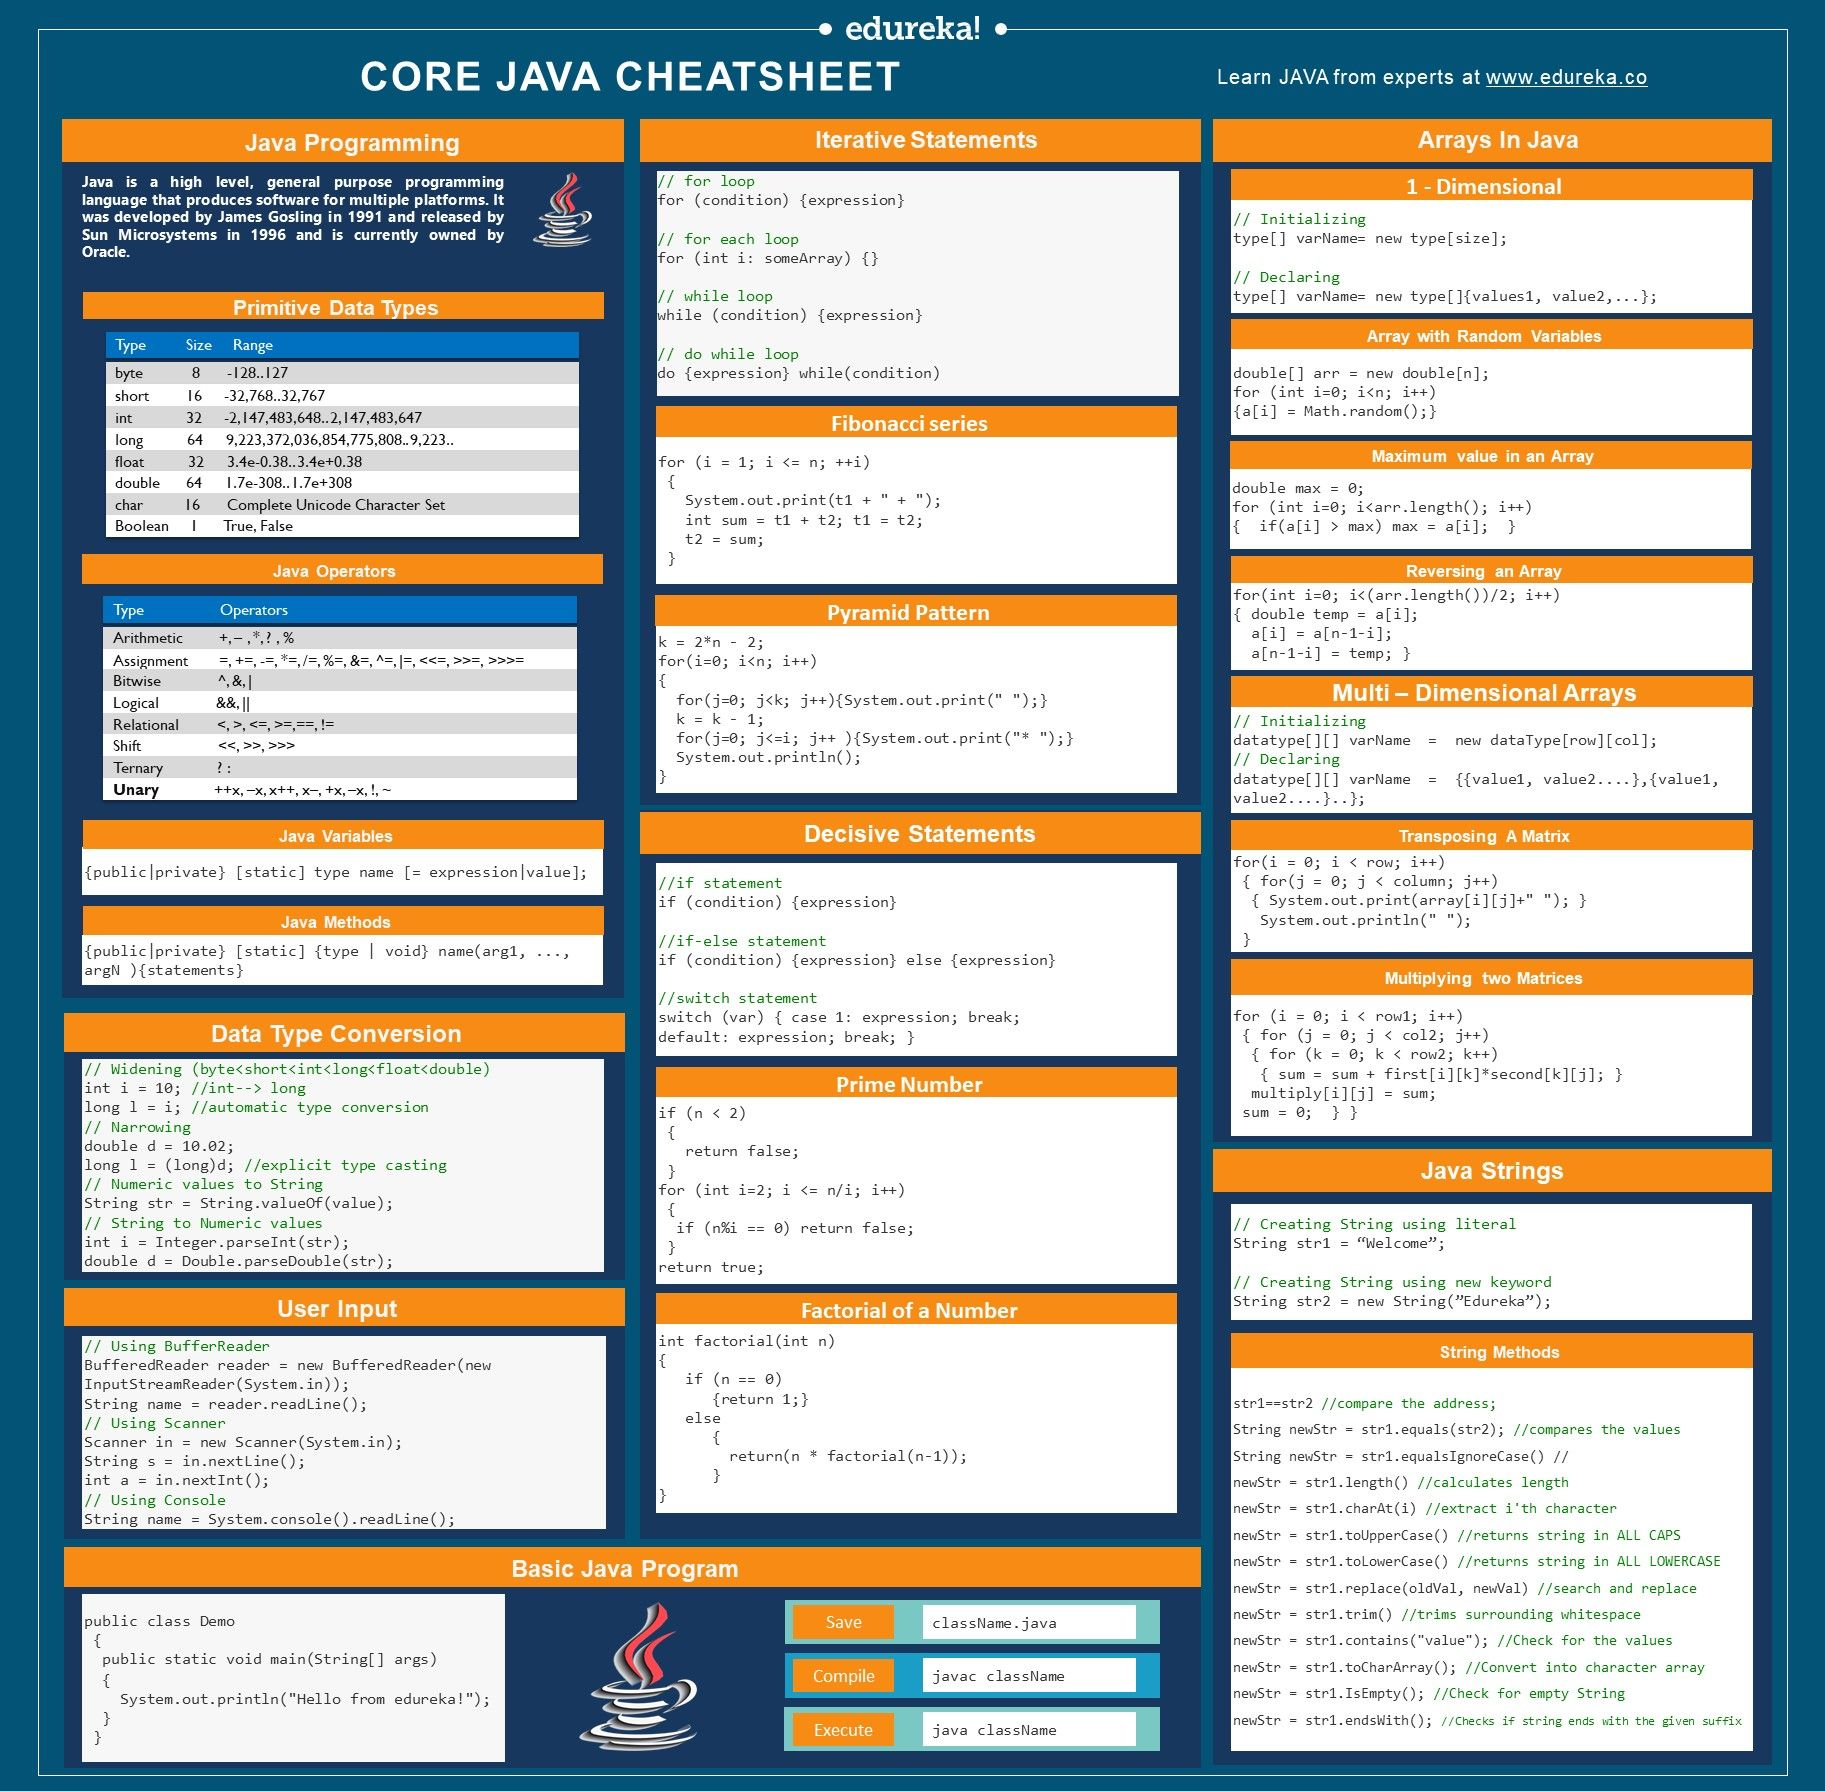 Java Cheat Sheet in 2020 Java cheat sheet, Cheat sheets